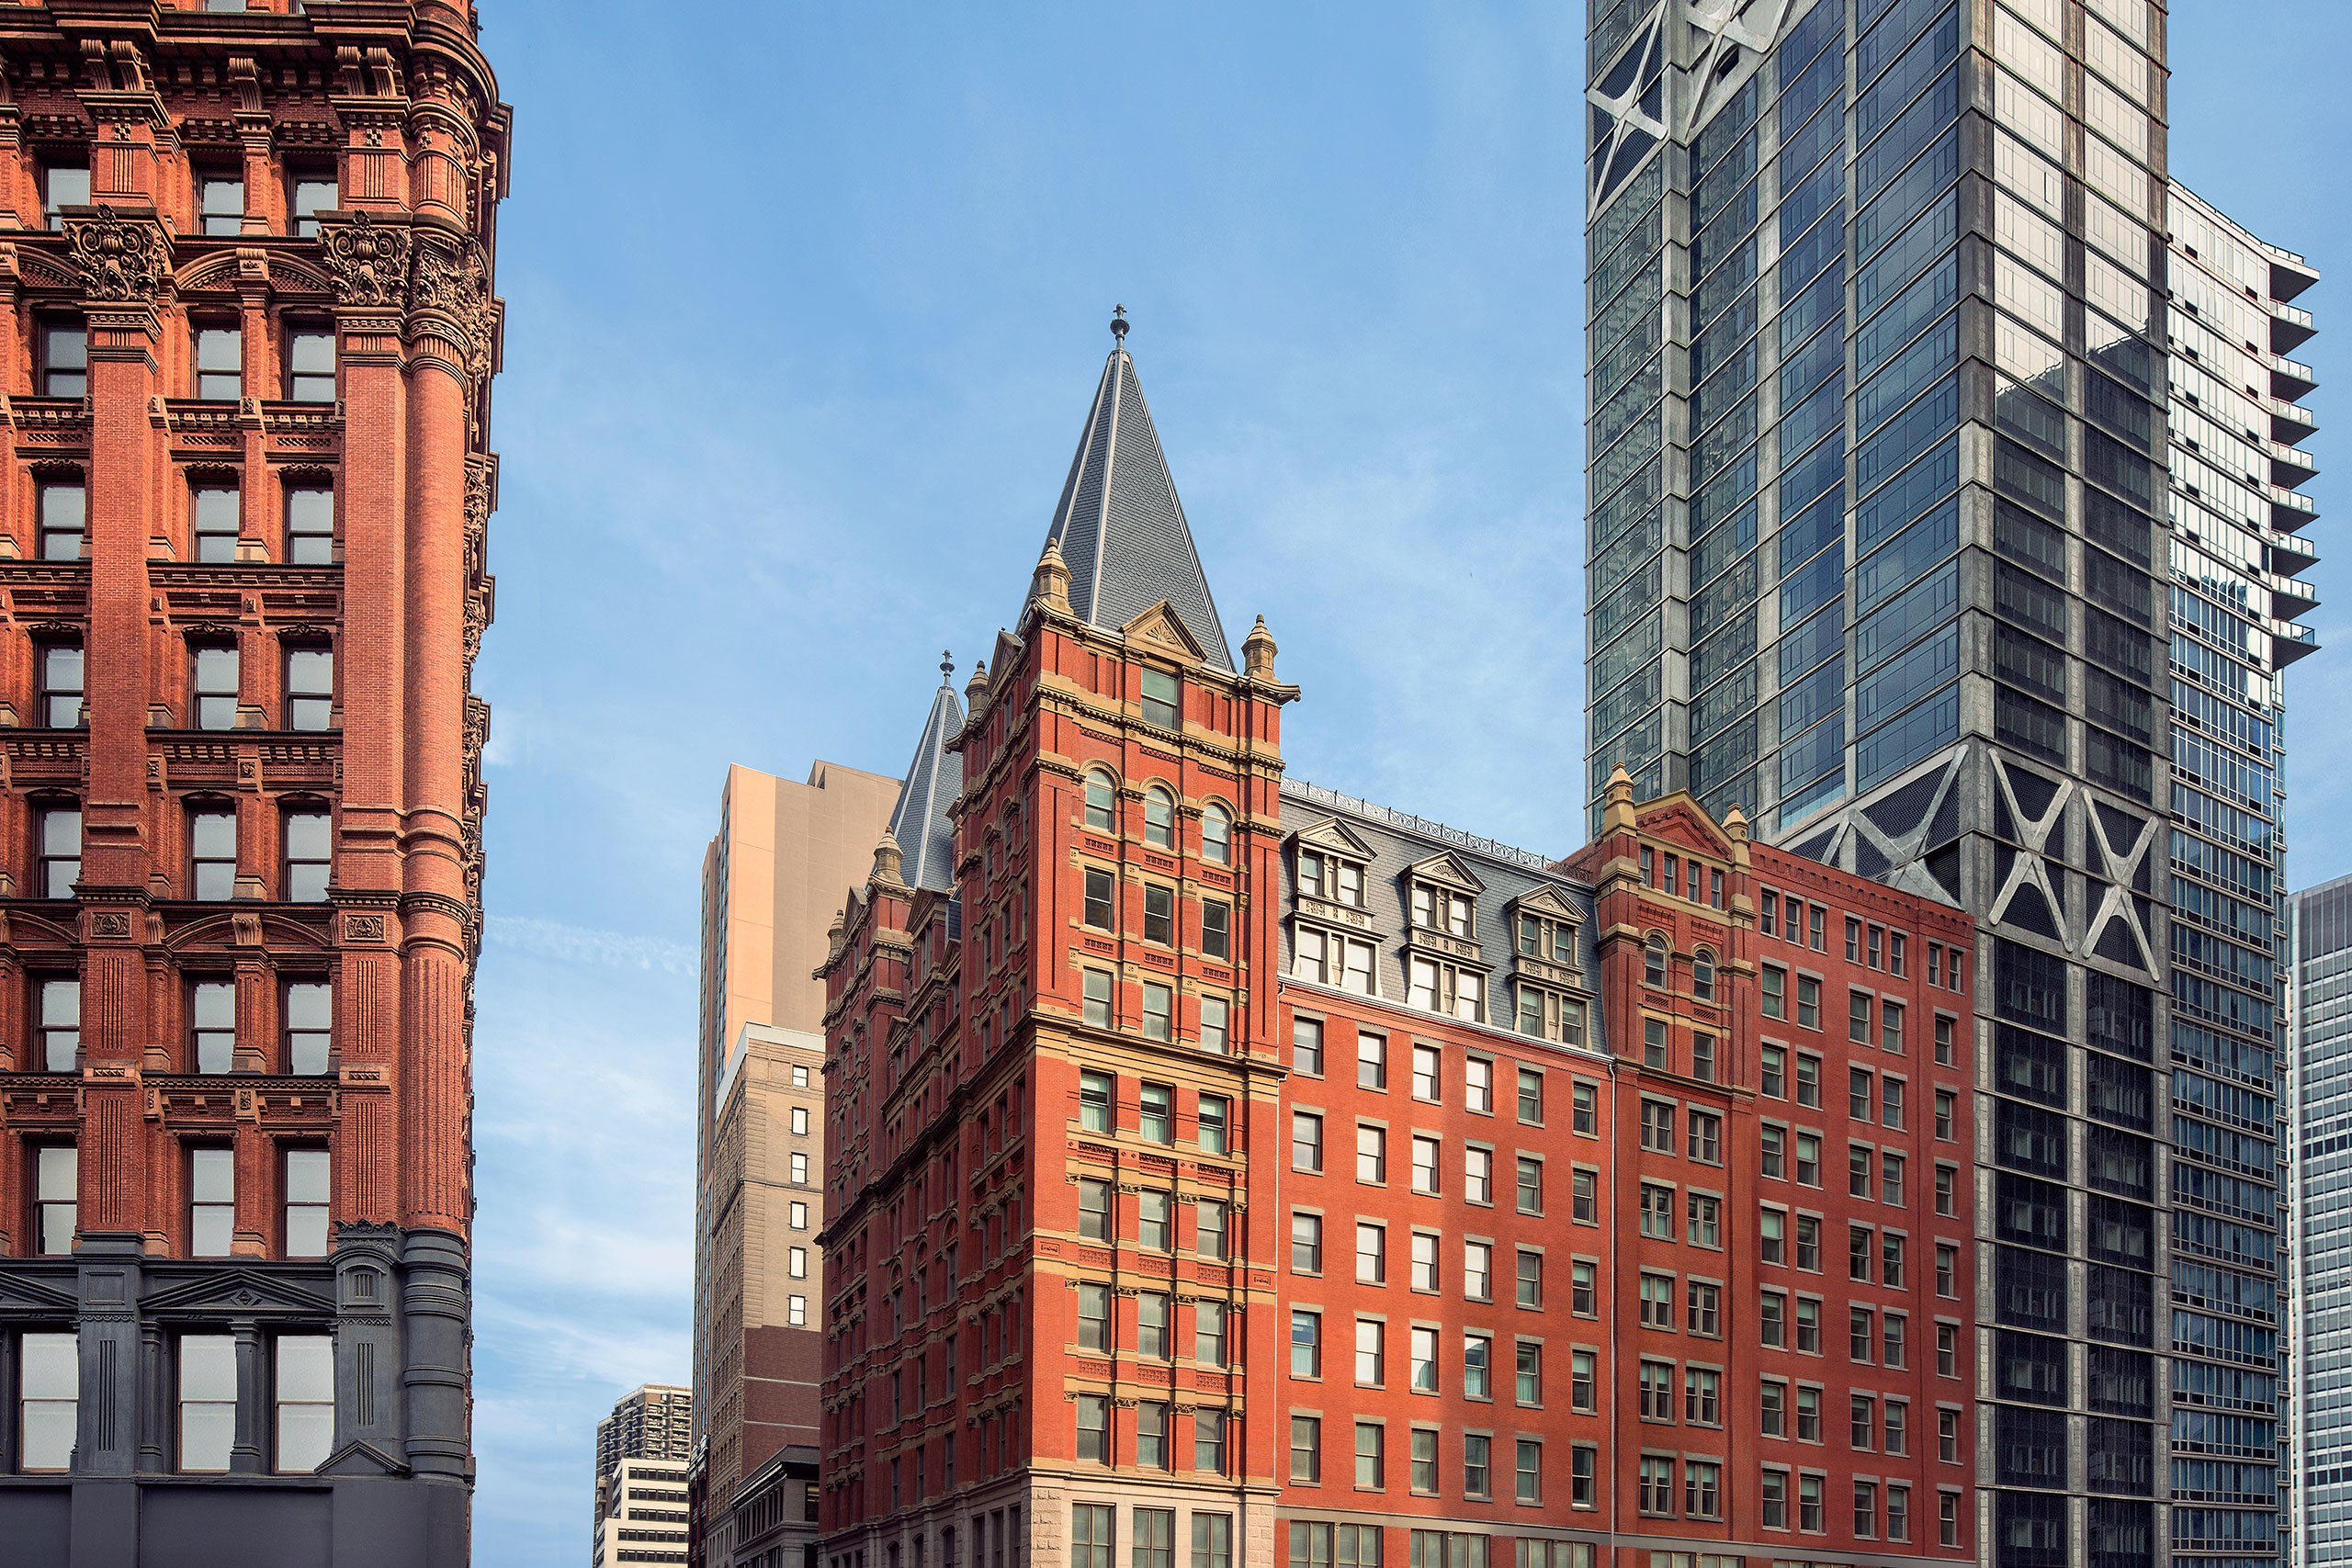 The_beekman_a_thompson_hotel_new_york_yatzer, Mandy stool by KOKET manhattan hotel Historic NYC Building Revival Gives Rise to a Luxury Manhattan Hotel p4 the beekman a thompson hotel new york yatzer